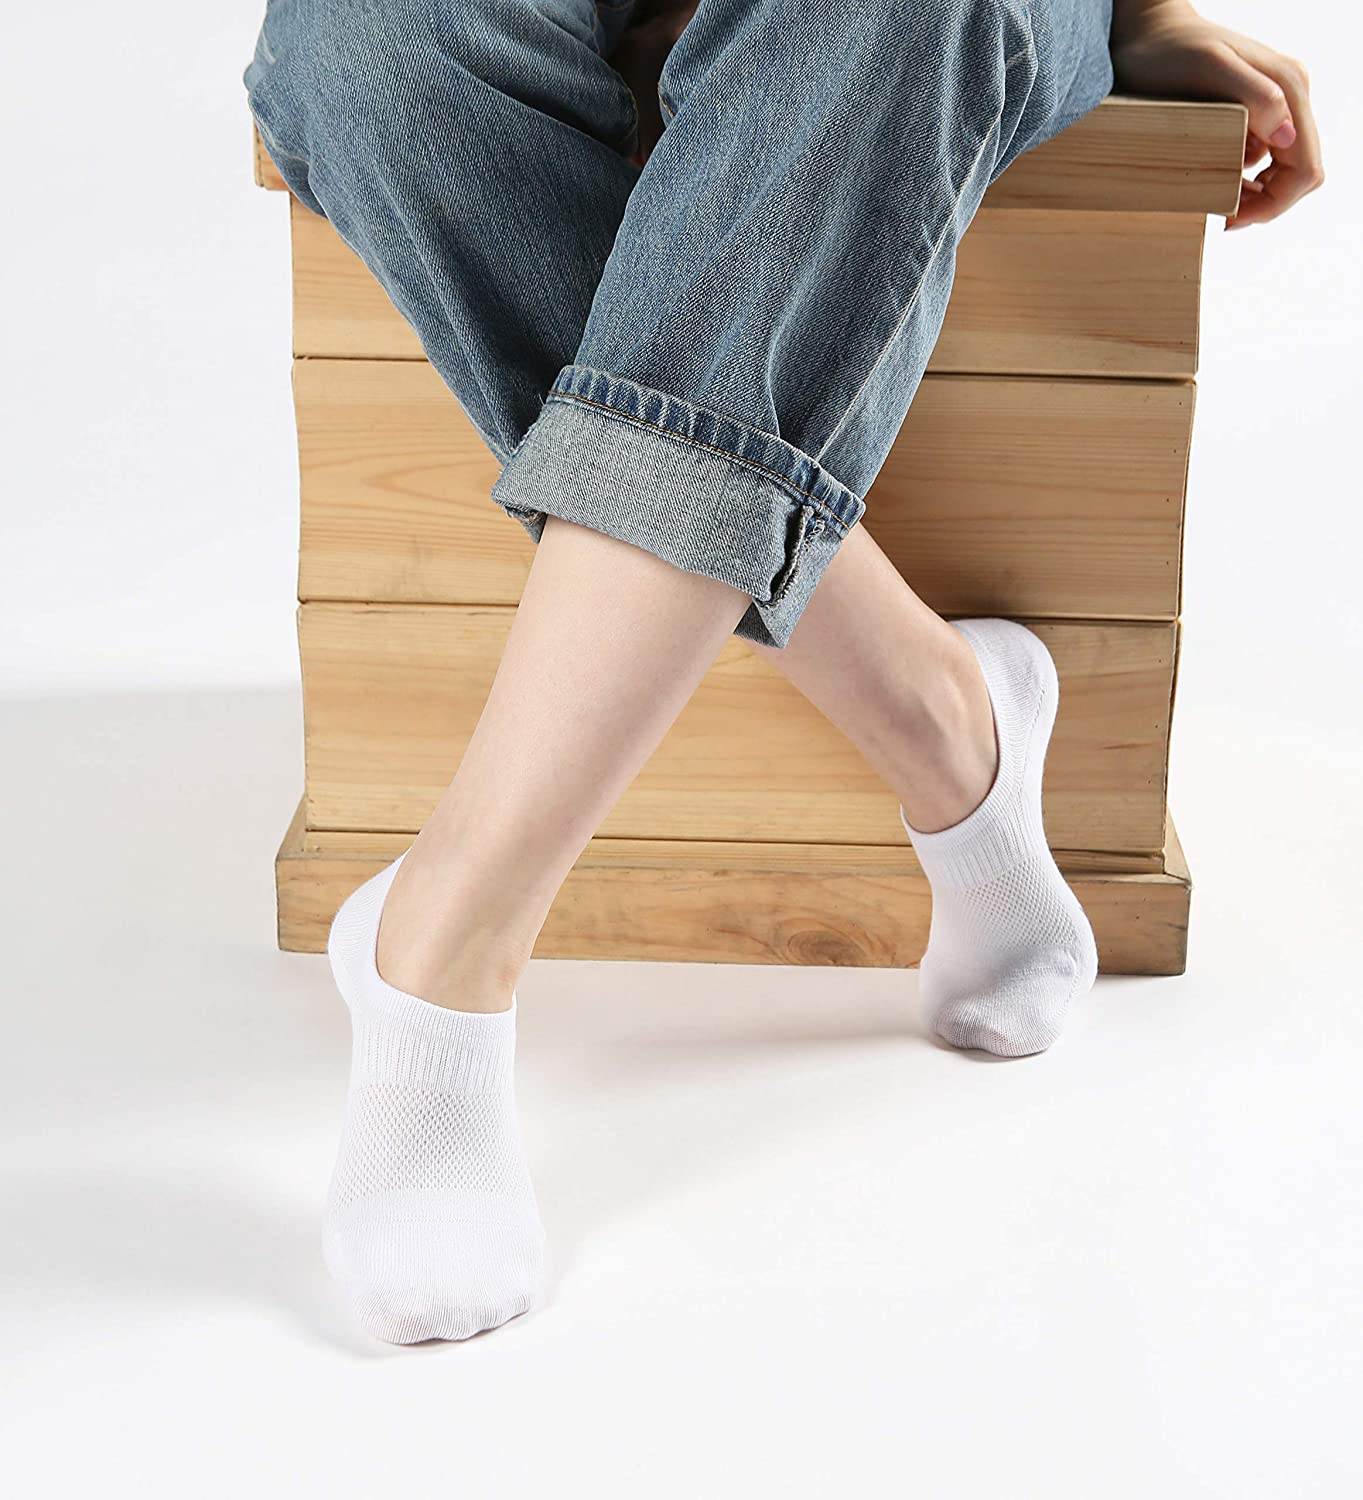 Pro Mountain No Show Socks 6 Pack Seamless Thin Low Cut Cotton Casual Liner